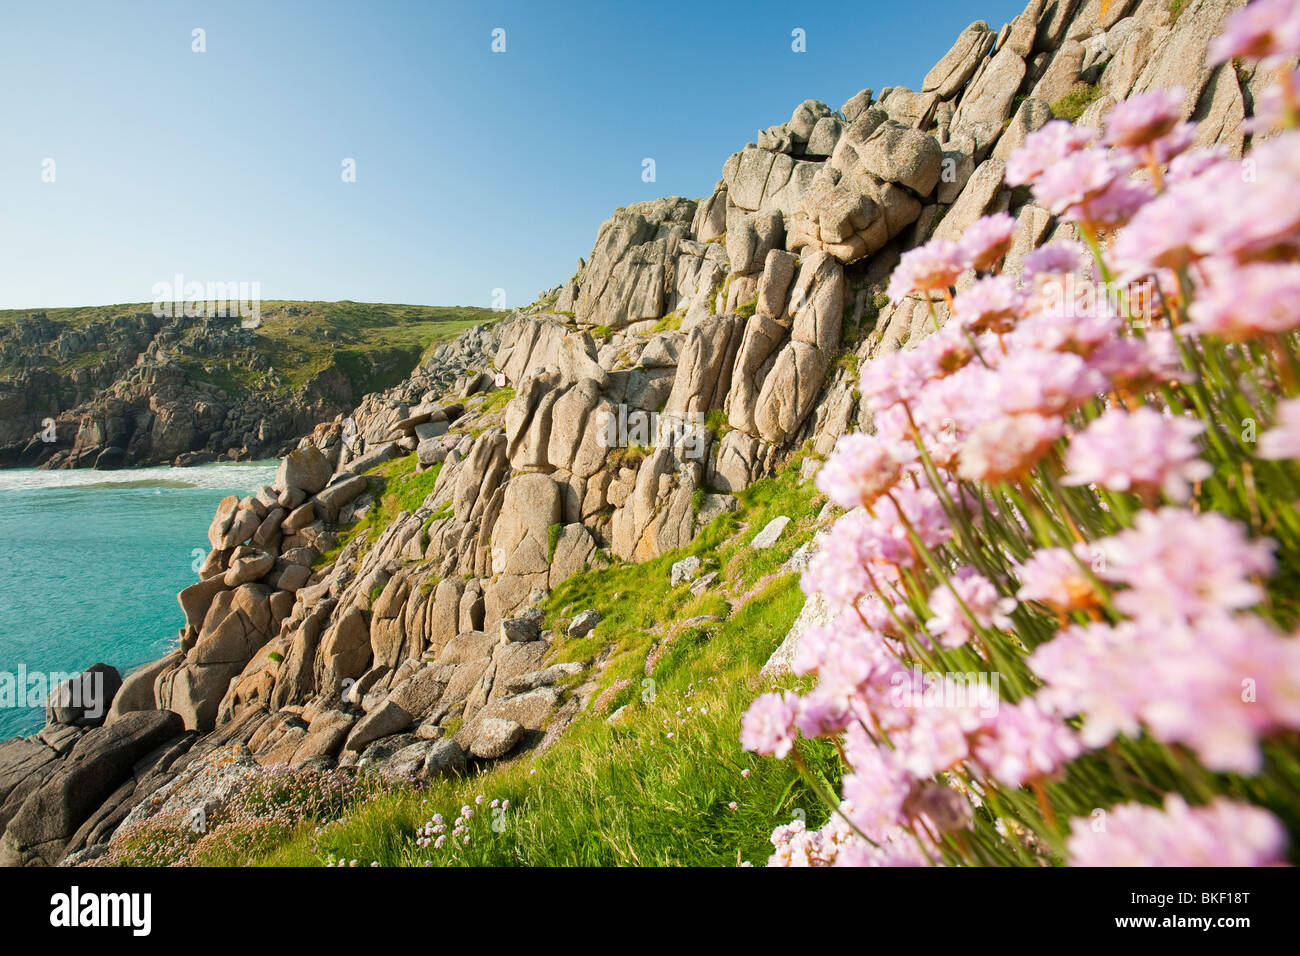 Sea pinks flowering on logan rock headland at porthcurno in cornwall sea pinks flowering on logan rock headland at porthcurno in cornwall uk mightylinksfo Image collections